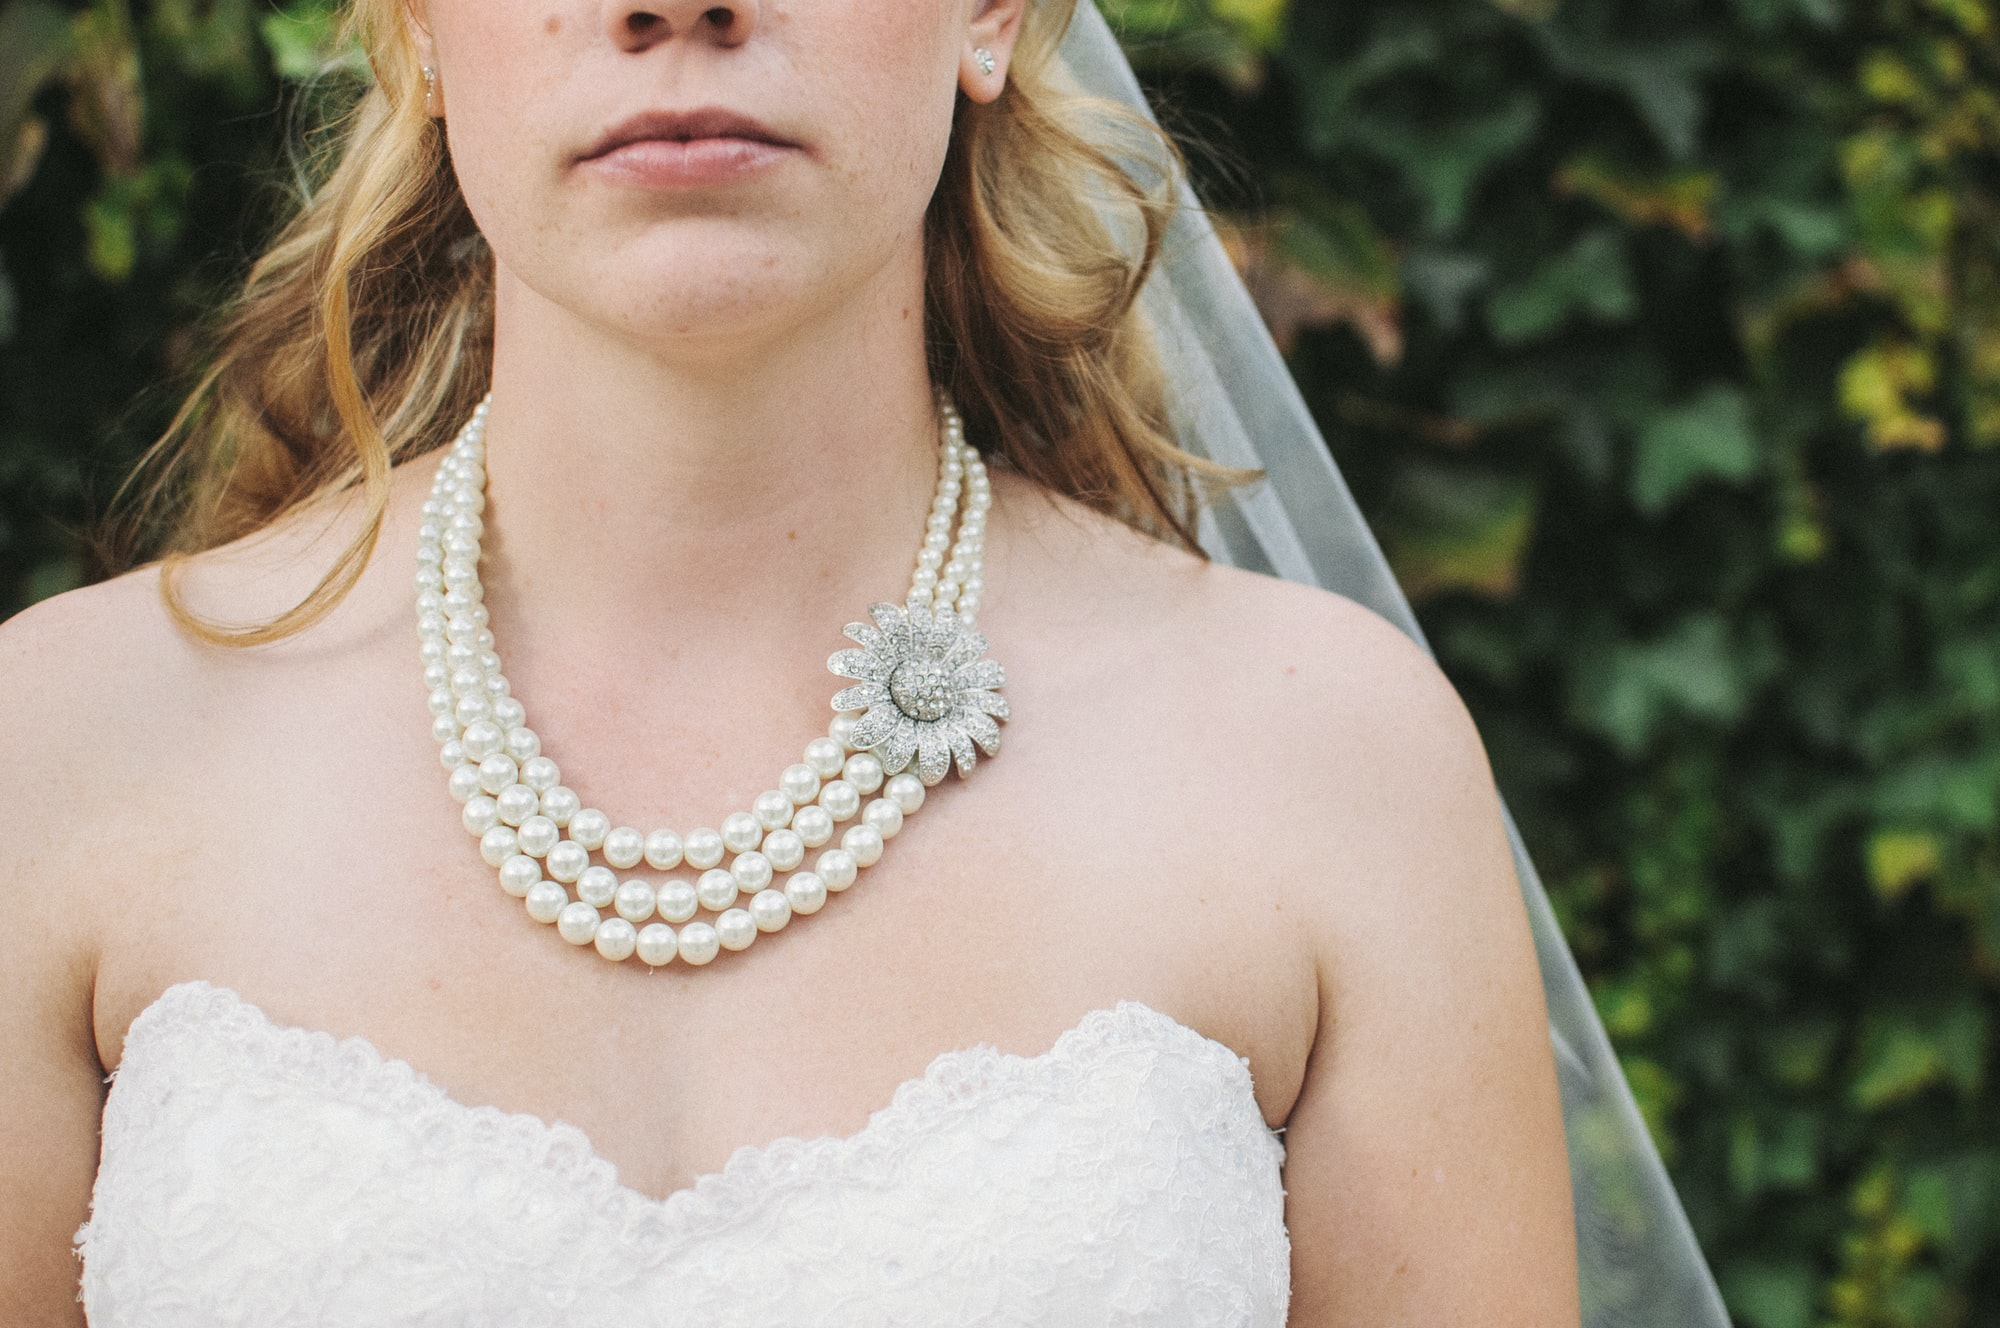 London bride with pearls